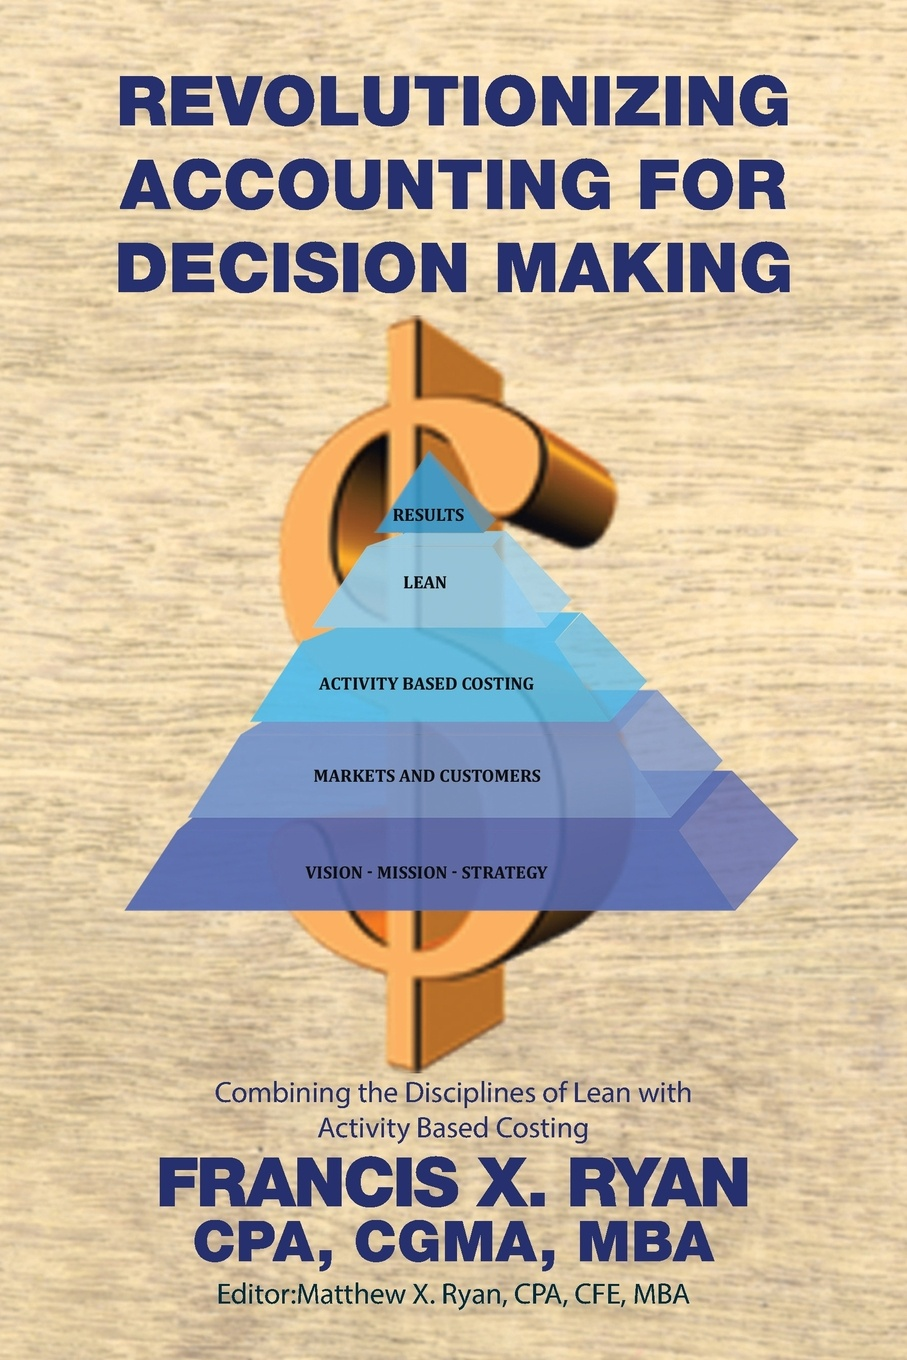 CPA CGMA MBA Francis X. Ryan Revolutionizing Accounting for Decision Making. Combining the Disciplines of Lean with Activity Based Costing activity based costing making it work for small and mid sized companies